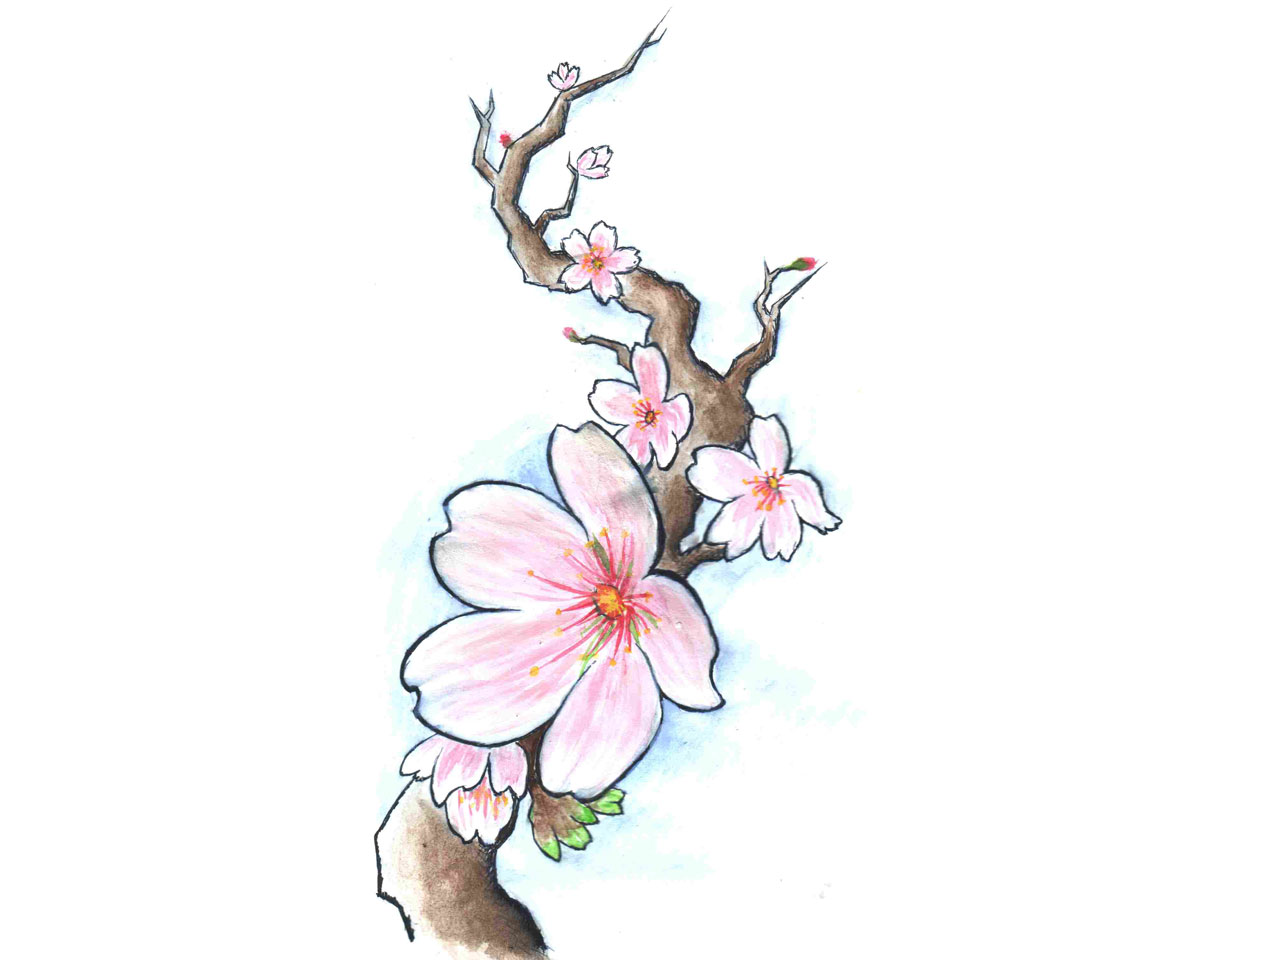 Drawn sakura blossom branch On cherry TattoosCherry (Obrazek JPEG